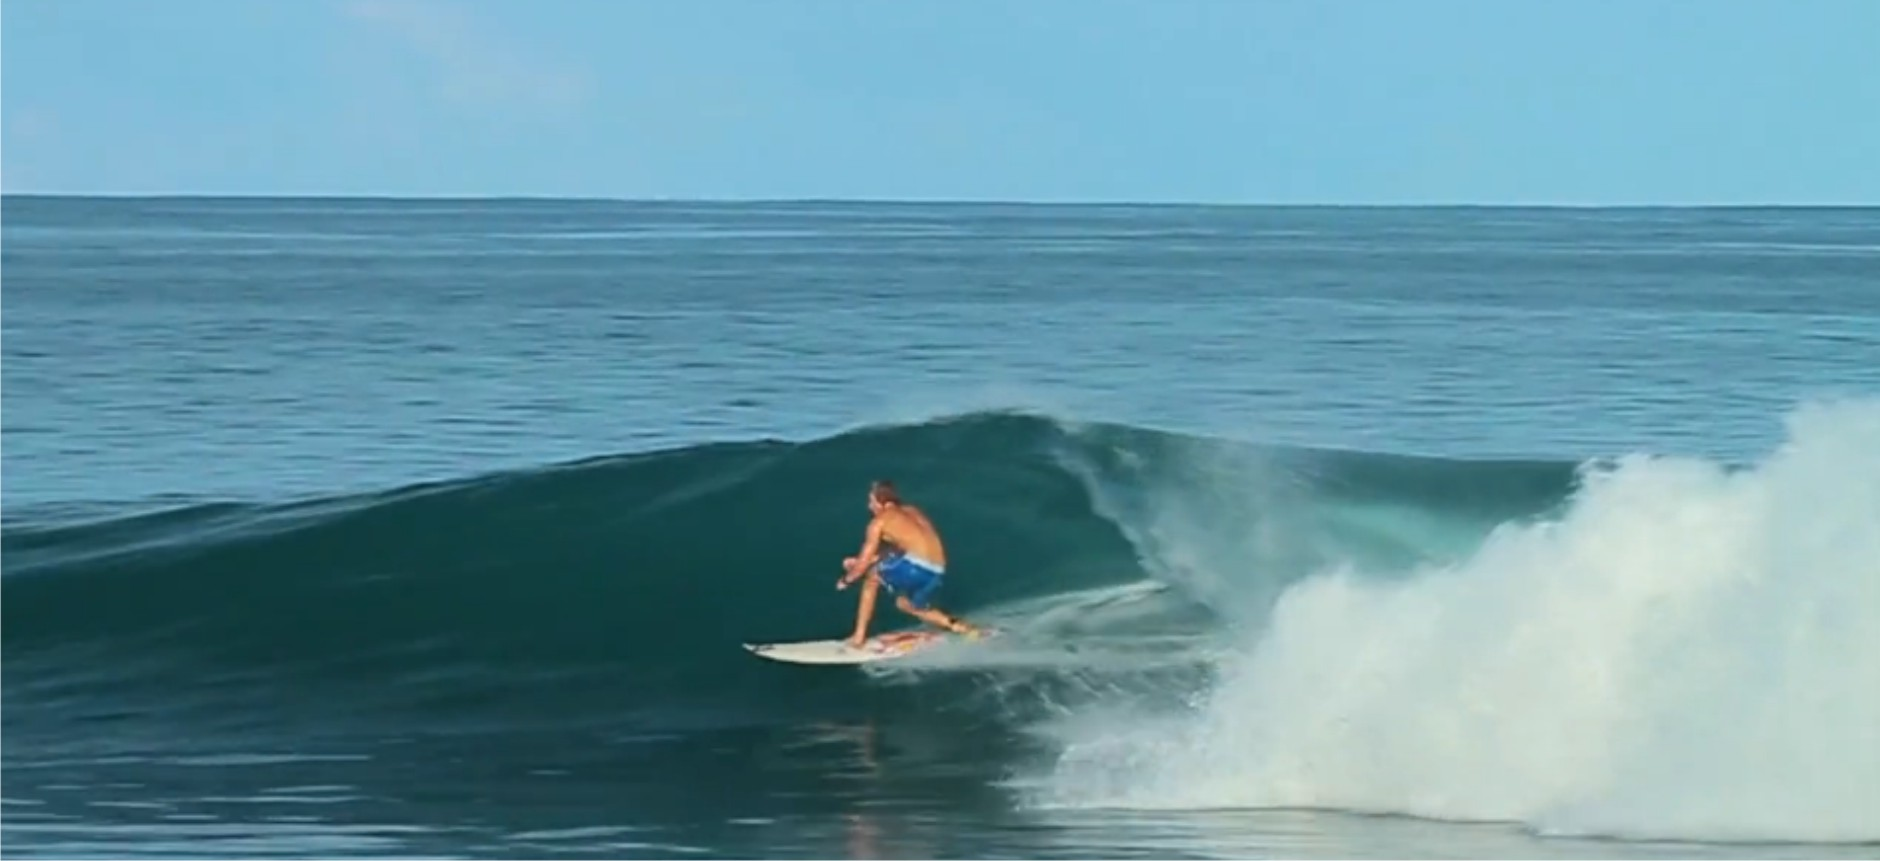 Visions with Matt Bromley surfing video